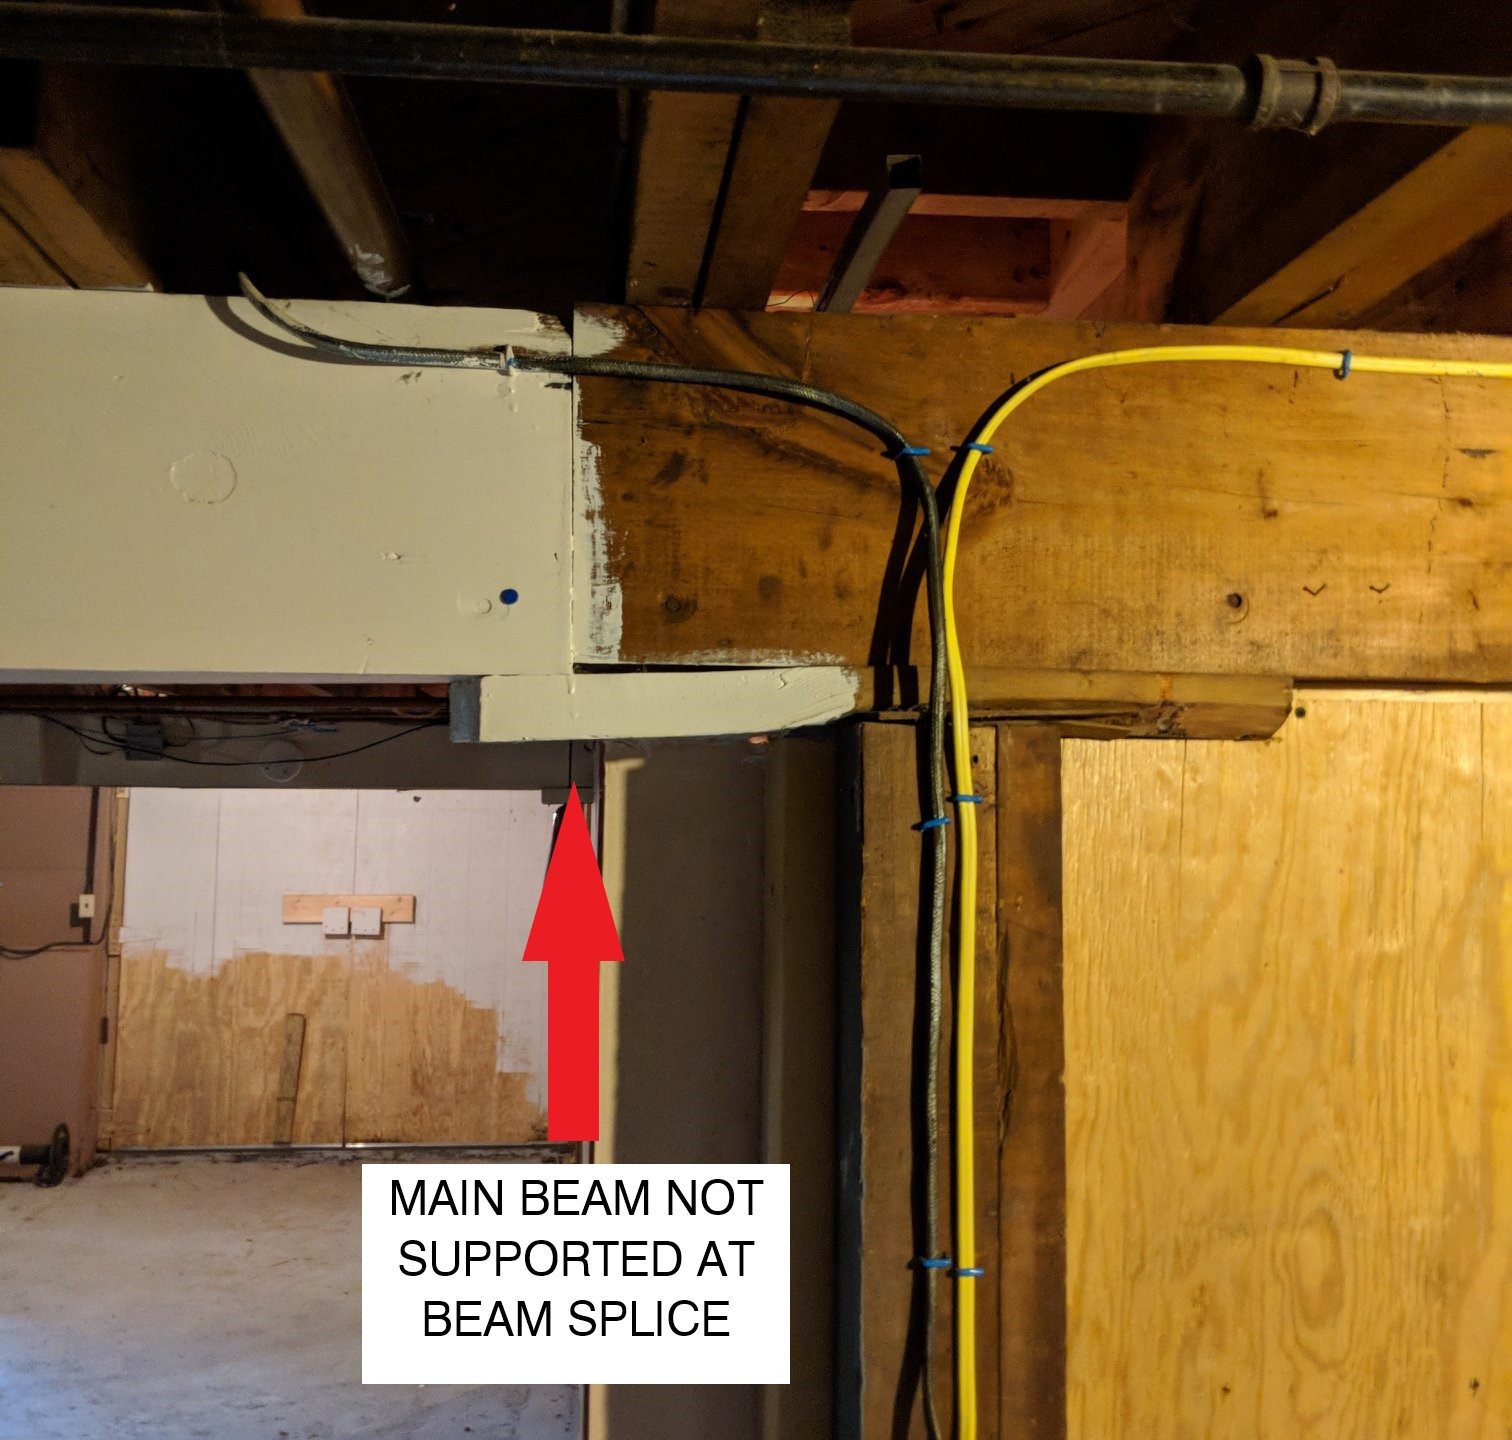 Beam Splice not Supported